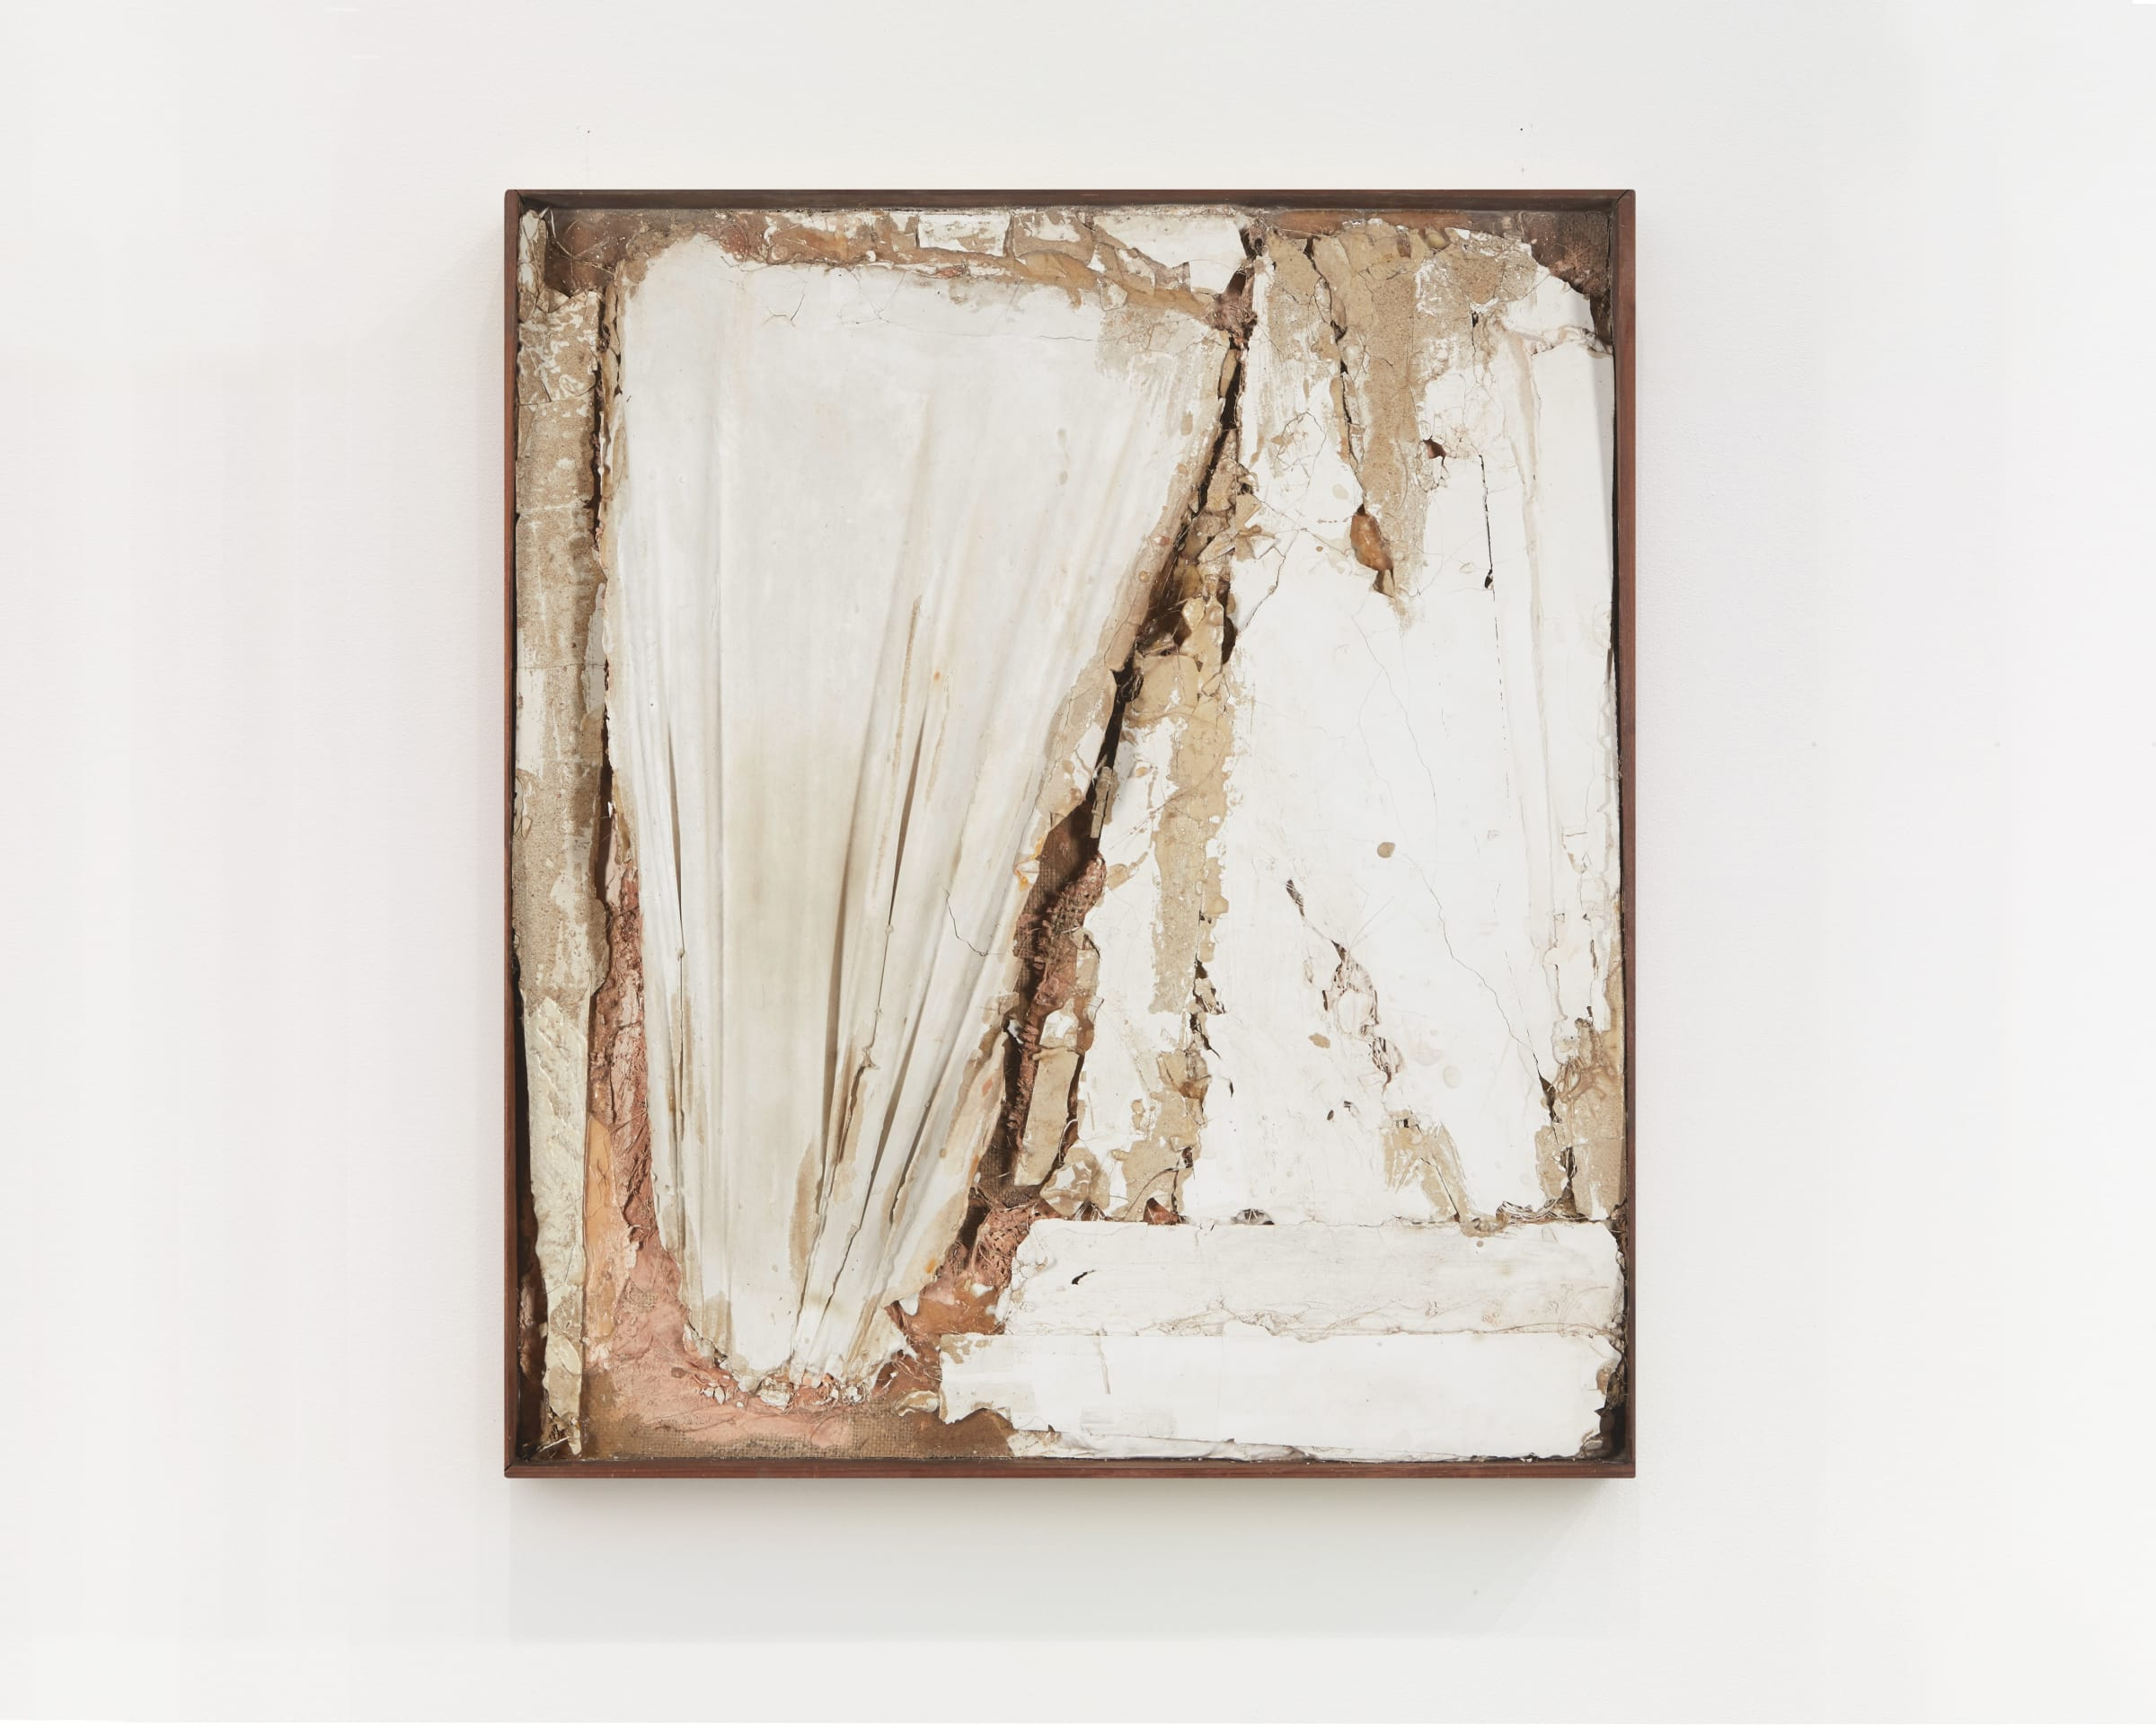 "<span class=""link fancybox-details-link""><a href=""/exhibitions/523/works/artworks_standalone10178/"">View Detail Page</a></span><div class=""medium"">Mixed media: Found materials bound with plaster with a wooden frame</div>